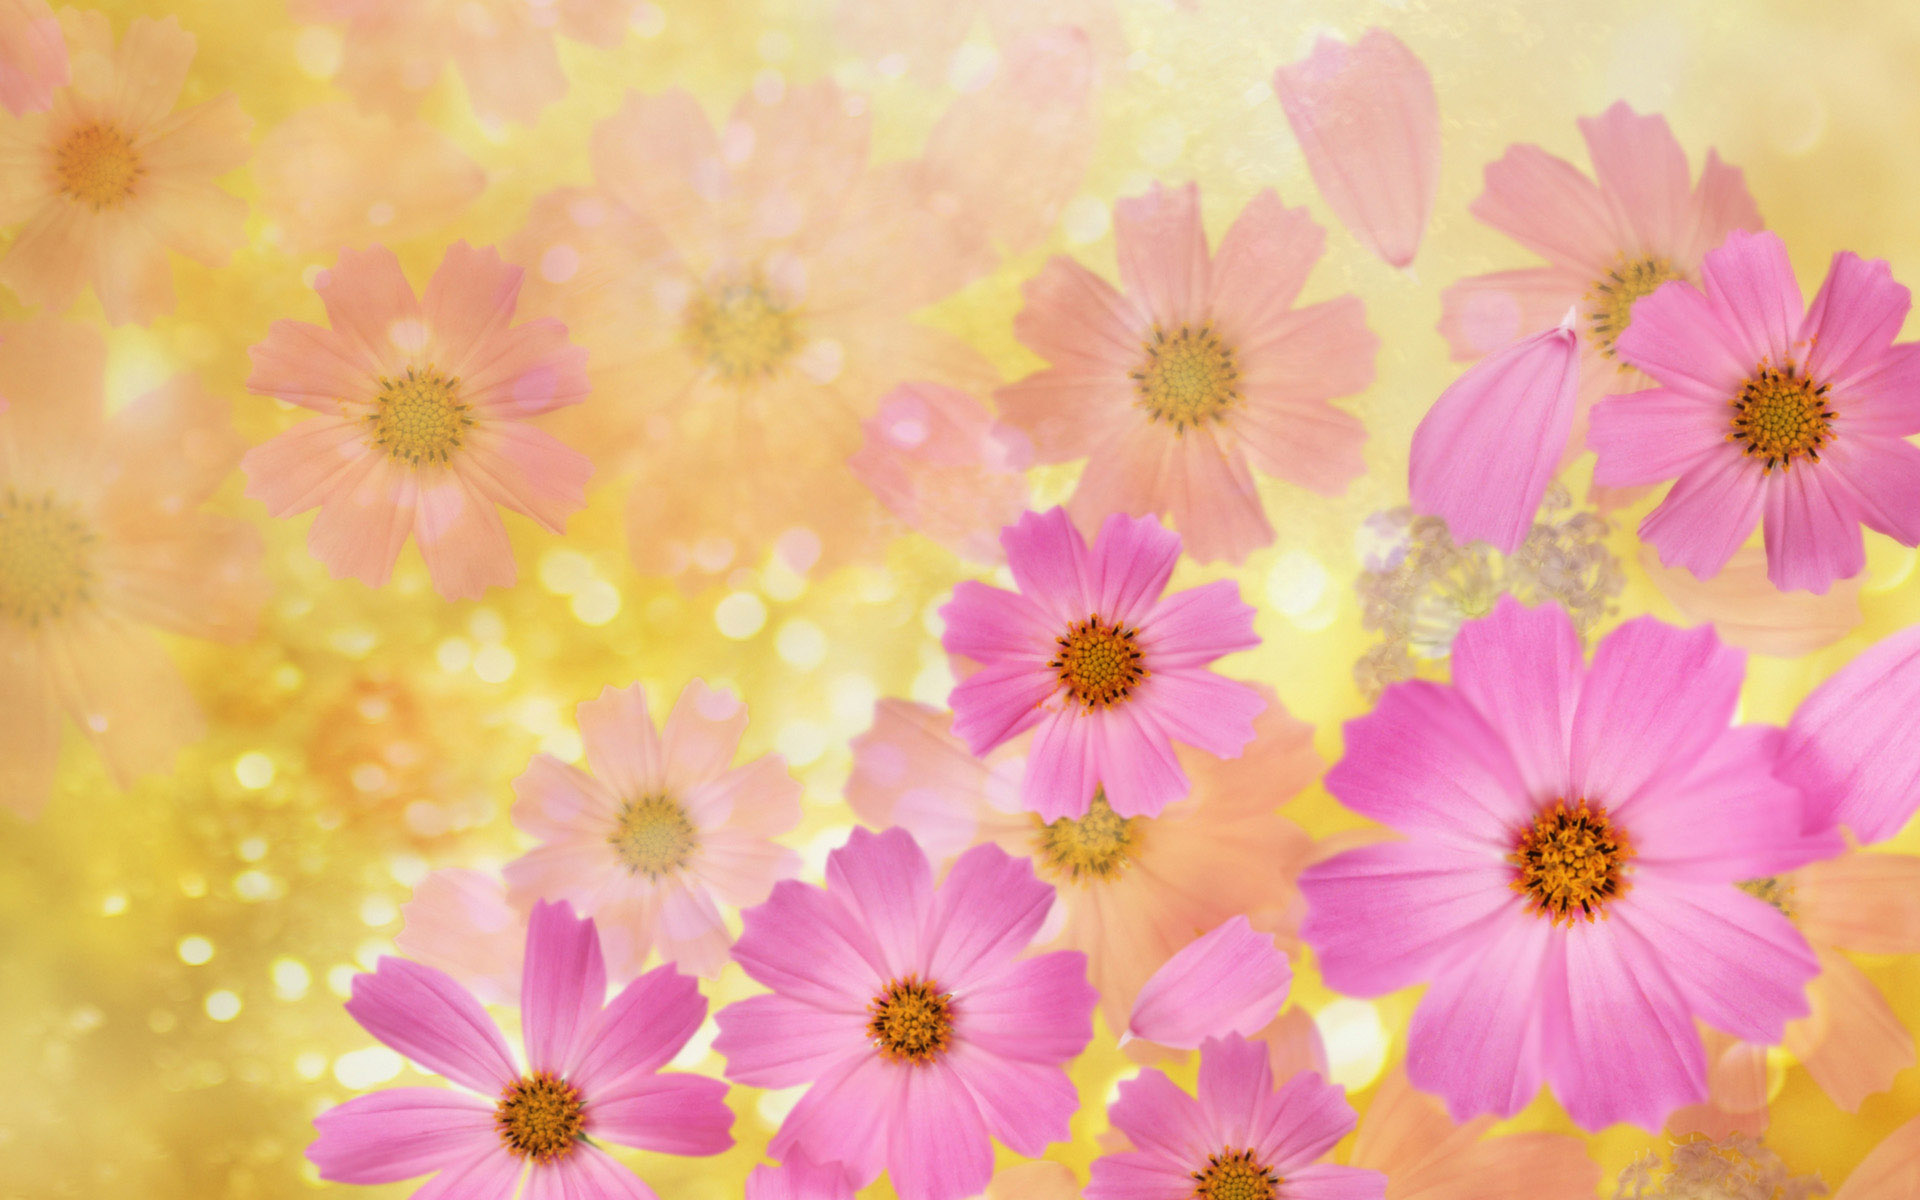 Cosmos flowers Wallpaper High Quality WallpapersWallpaper Desktop 1920x1200